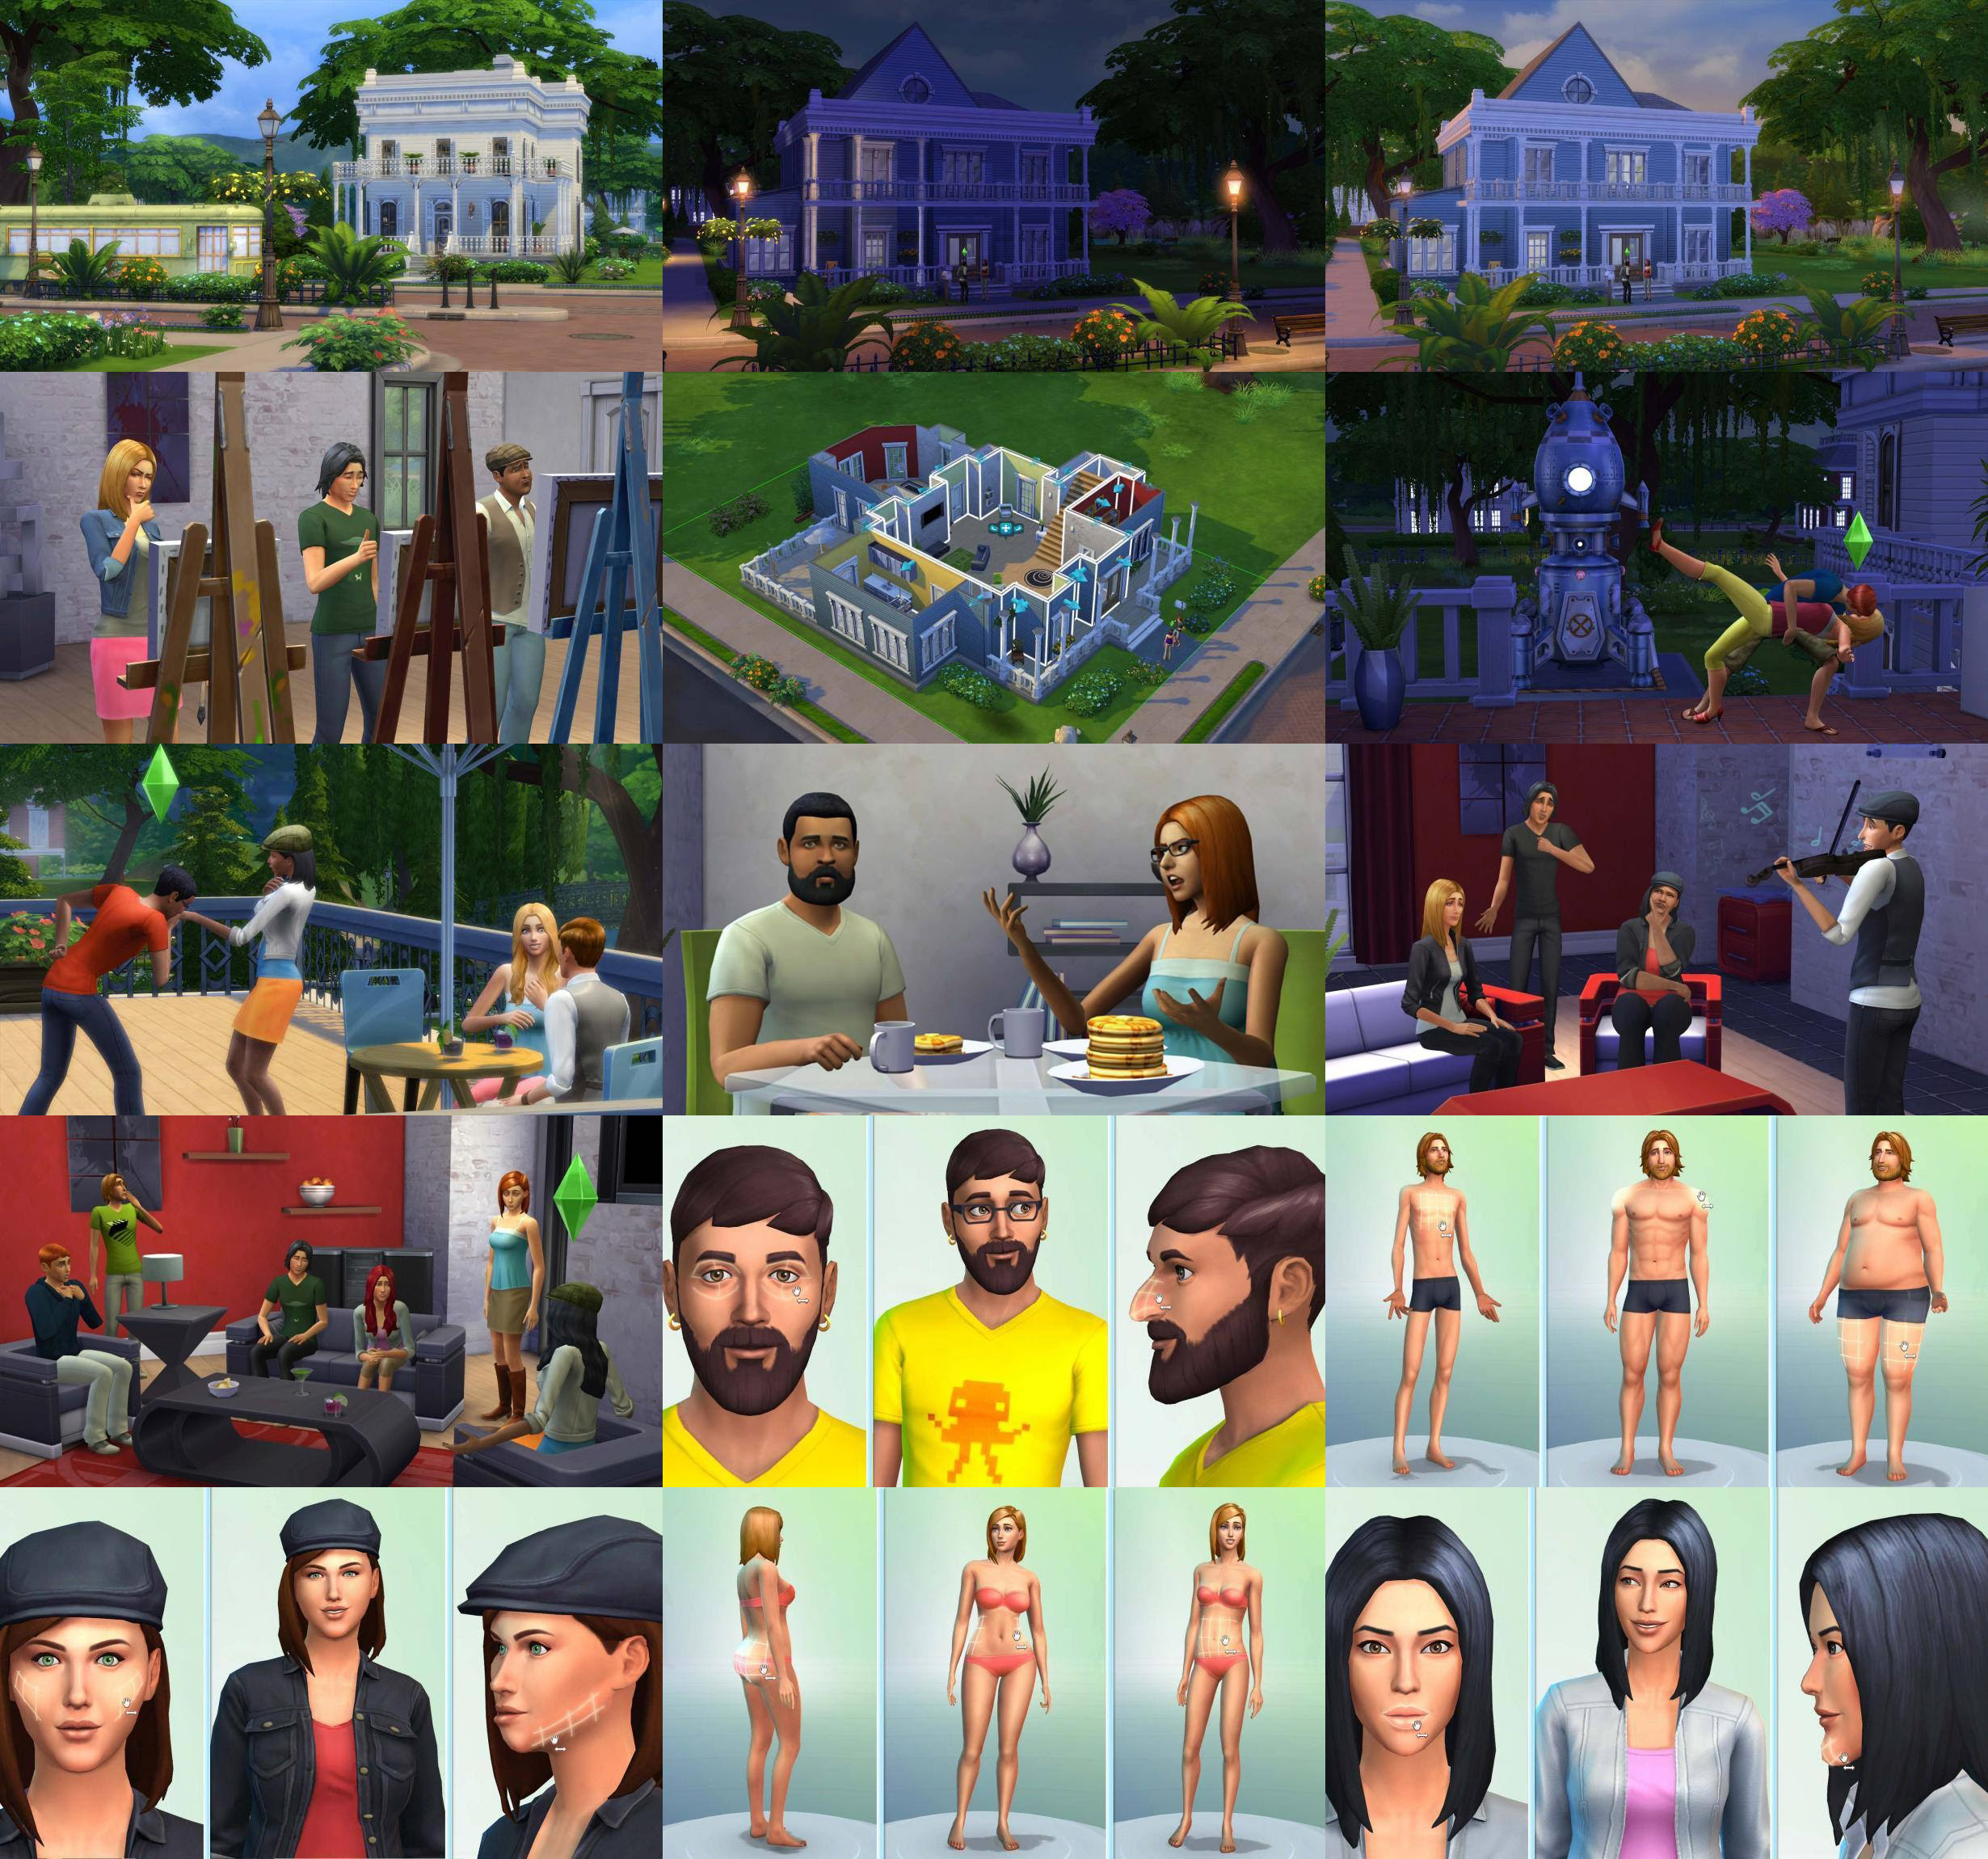 Sims 4 images new sims 4 hd wallpaper and background for Sims 4 raumgestaltung